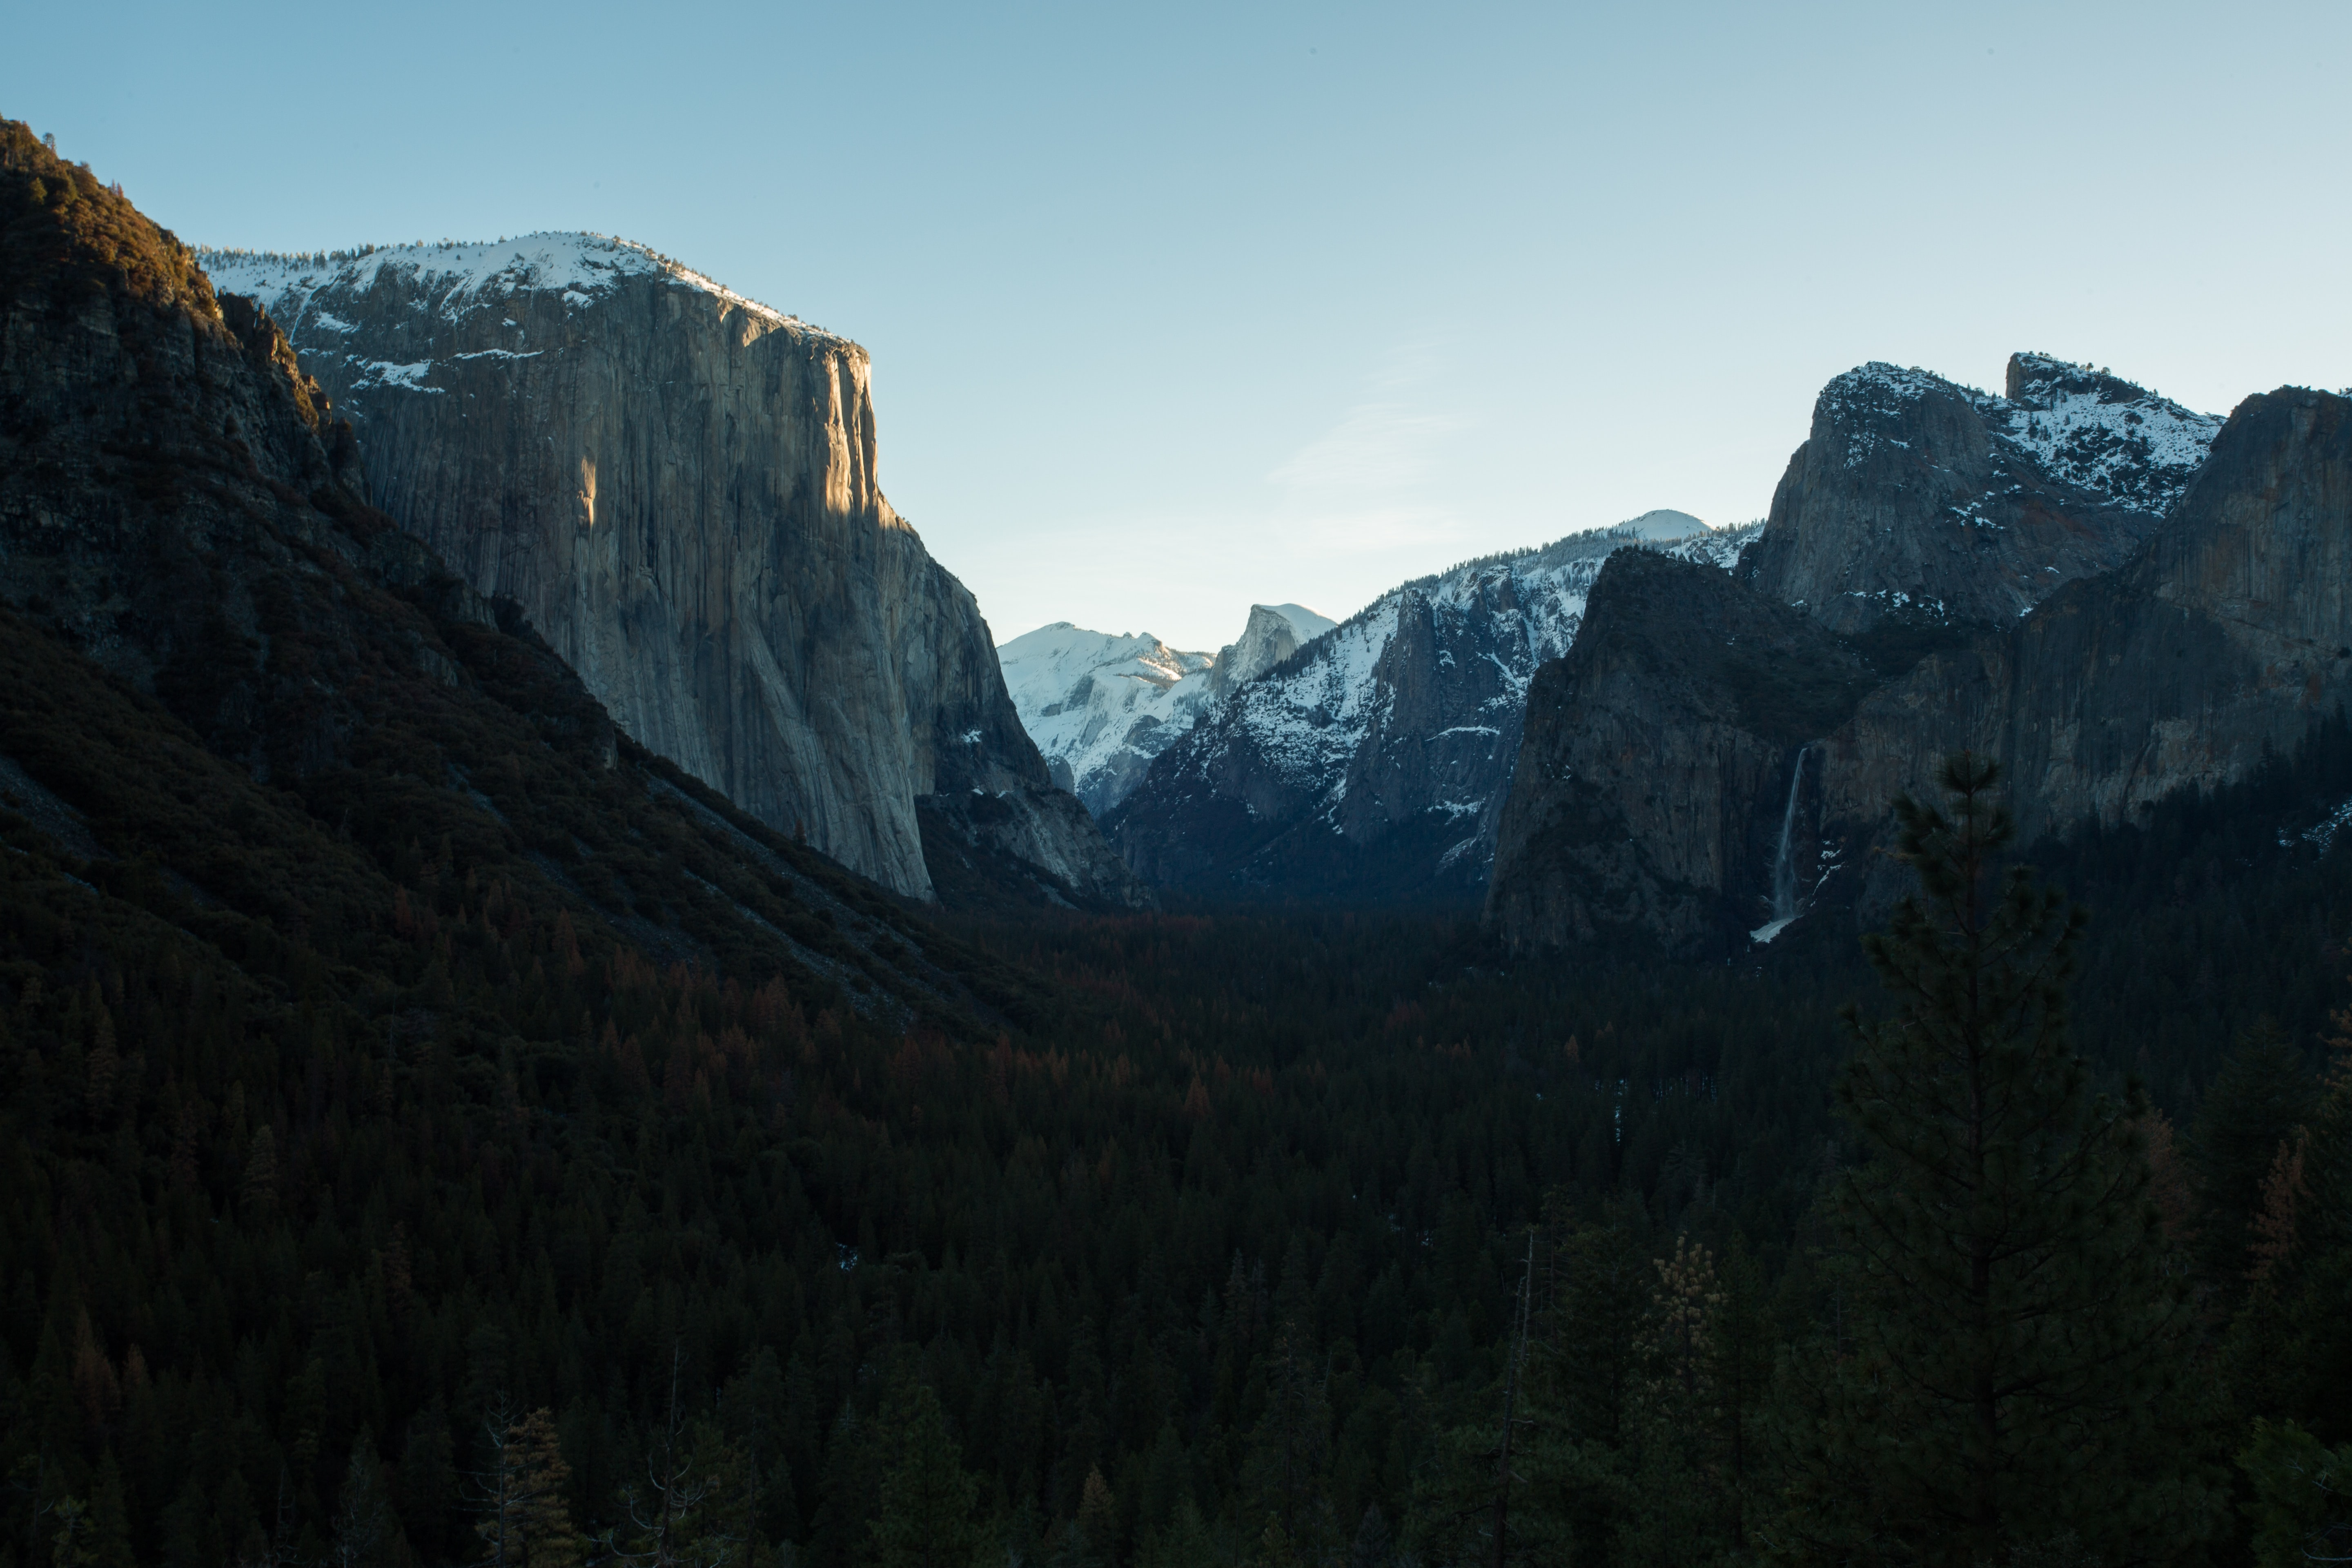 A dim shot of the floor of Yosemite Valley